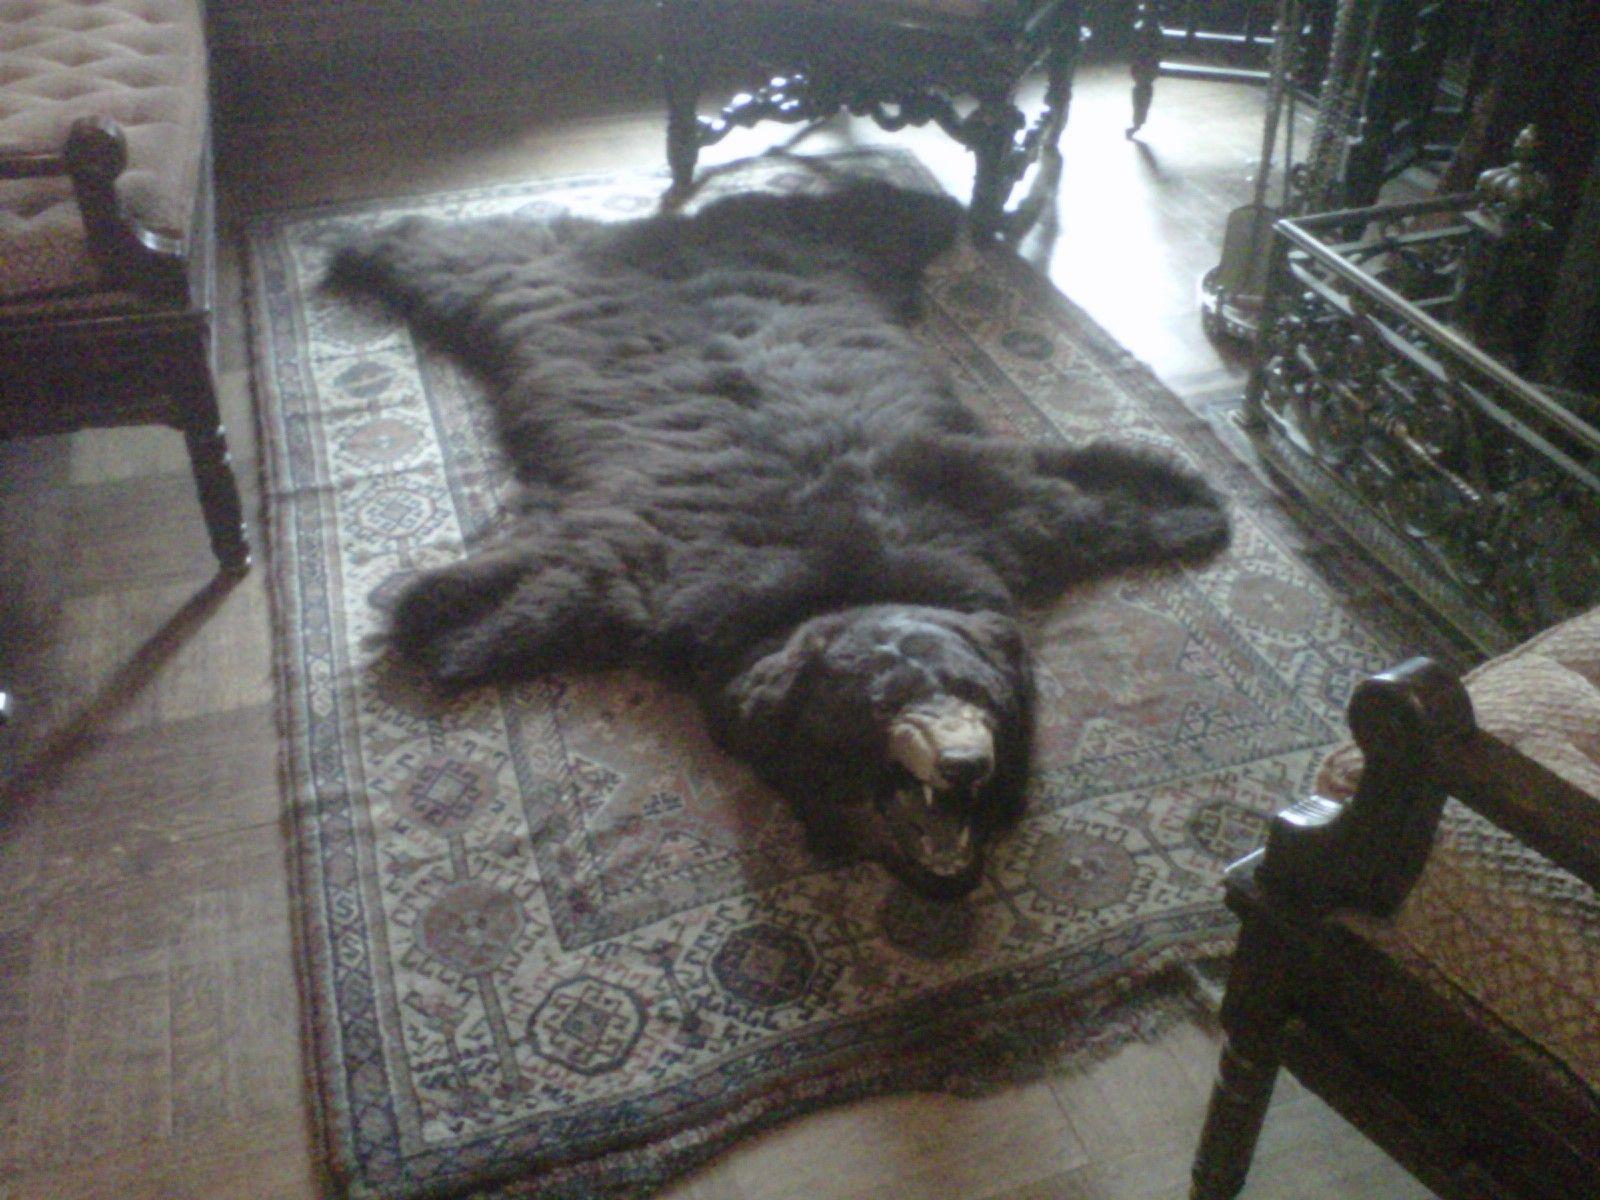 Bear Skin Rug On Display In Grand Entrance Area In Front